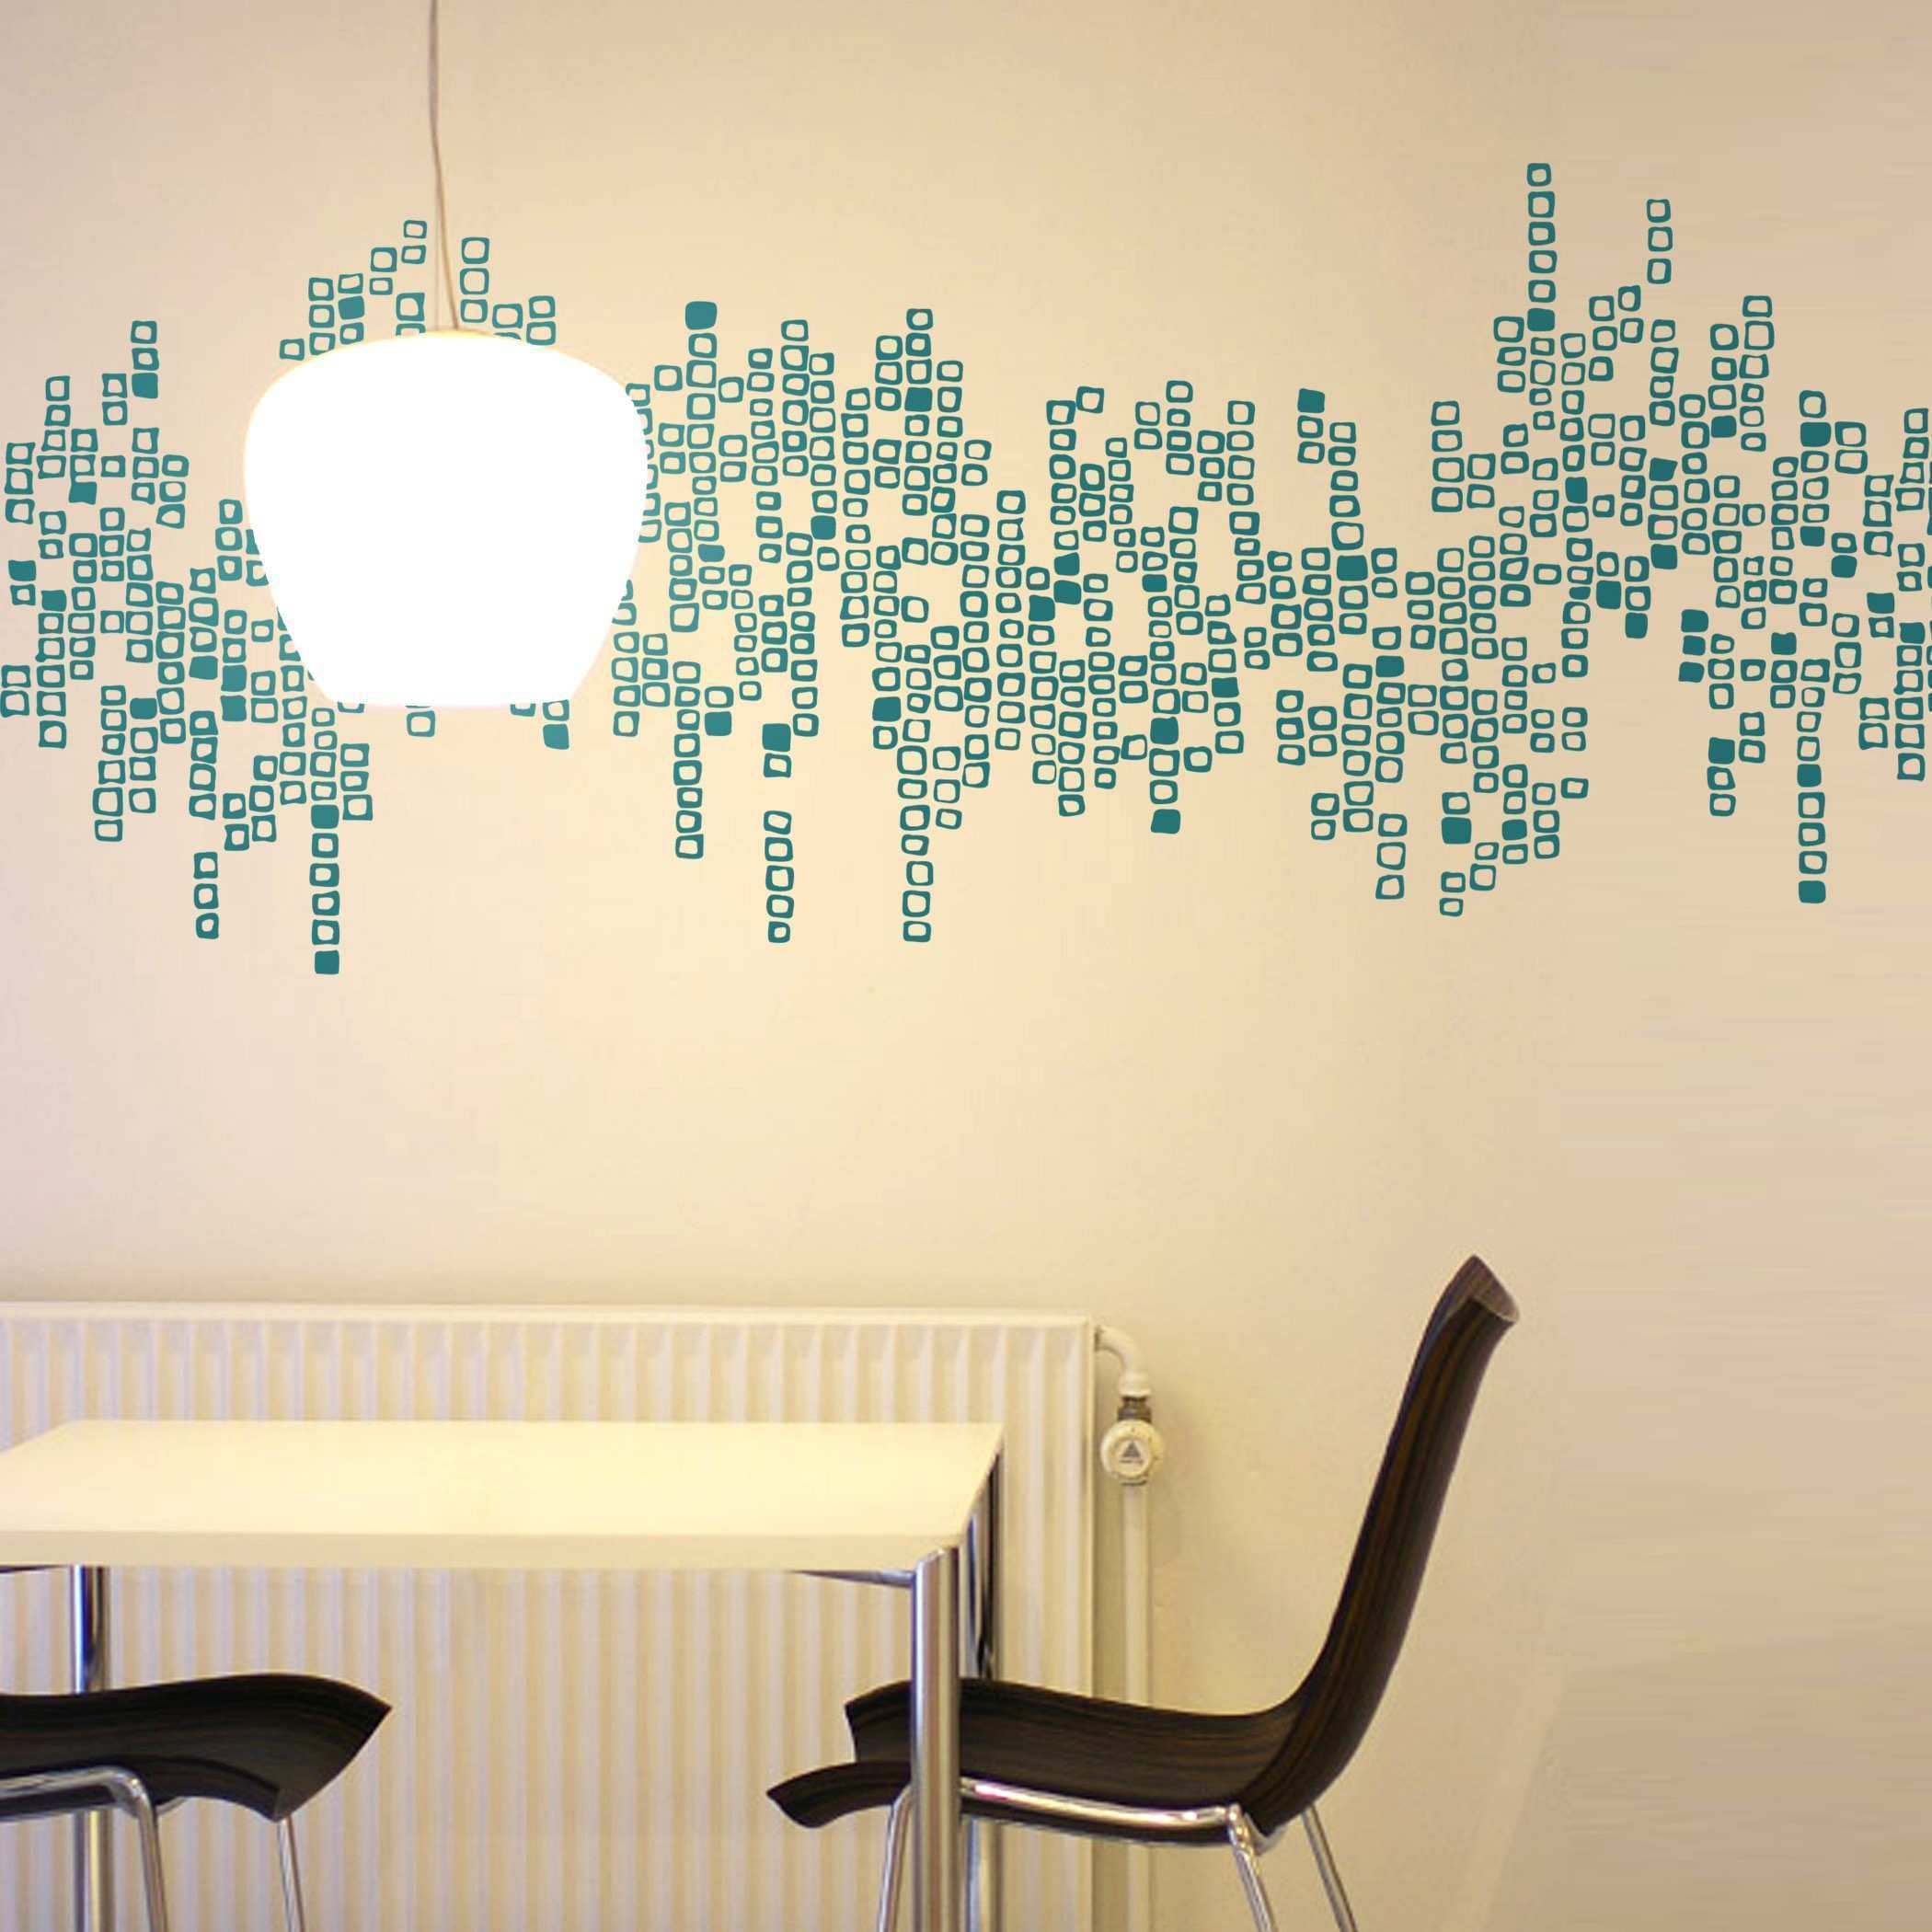 Cozy Exterior Theme With Extra Wall Decals For Dining Room Hafoti